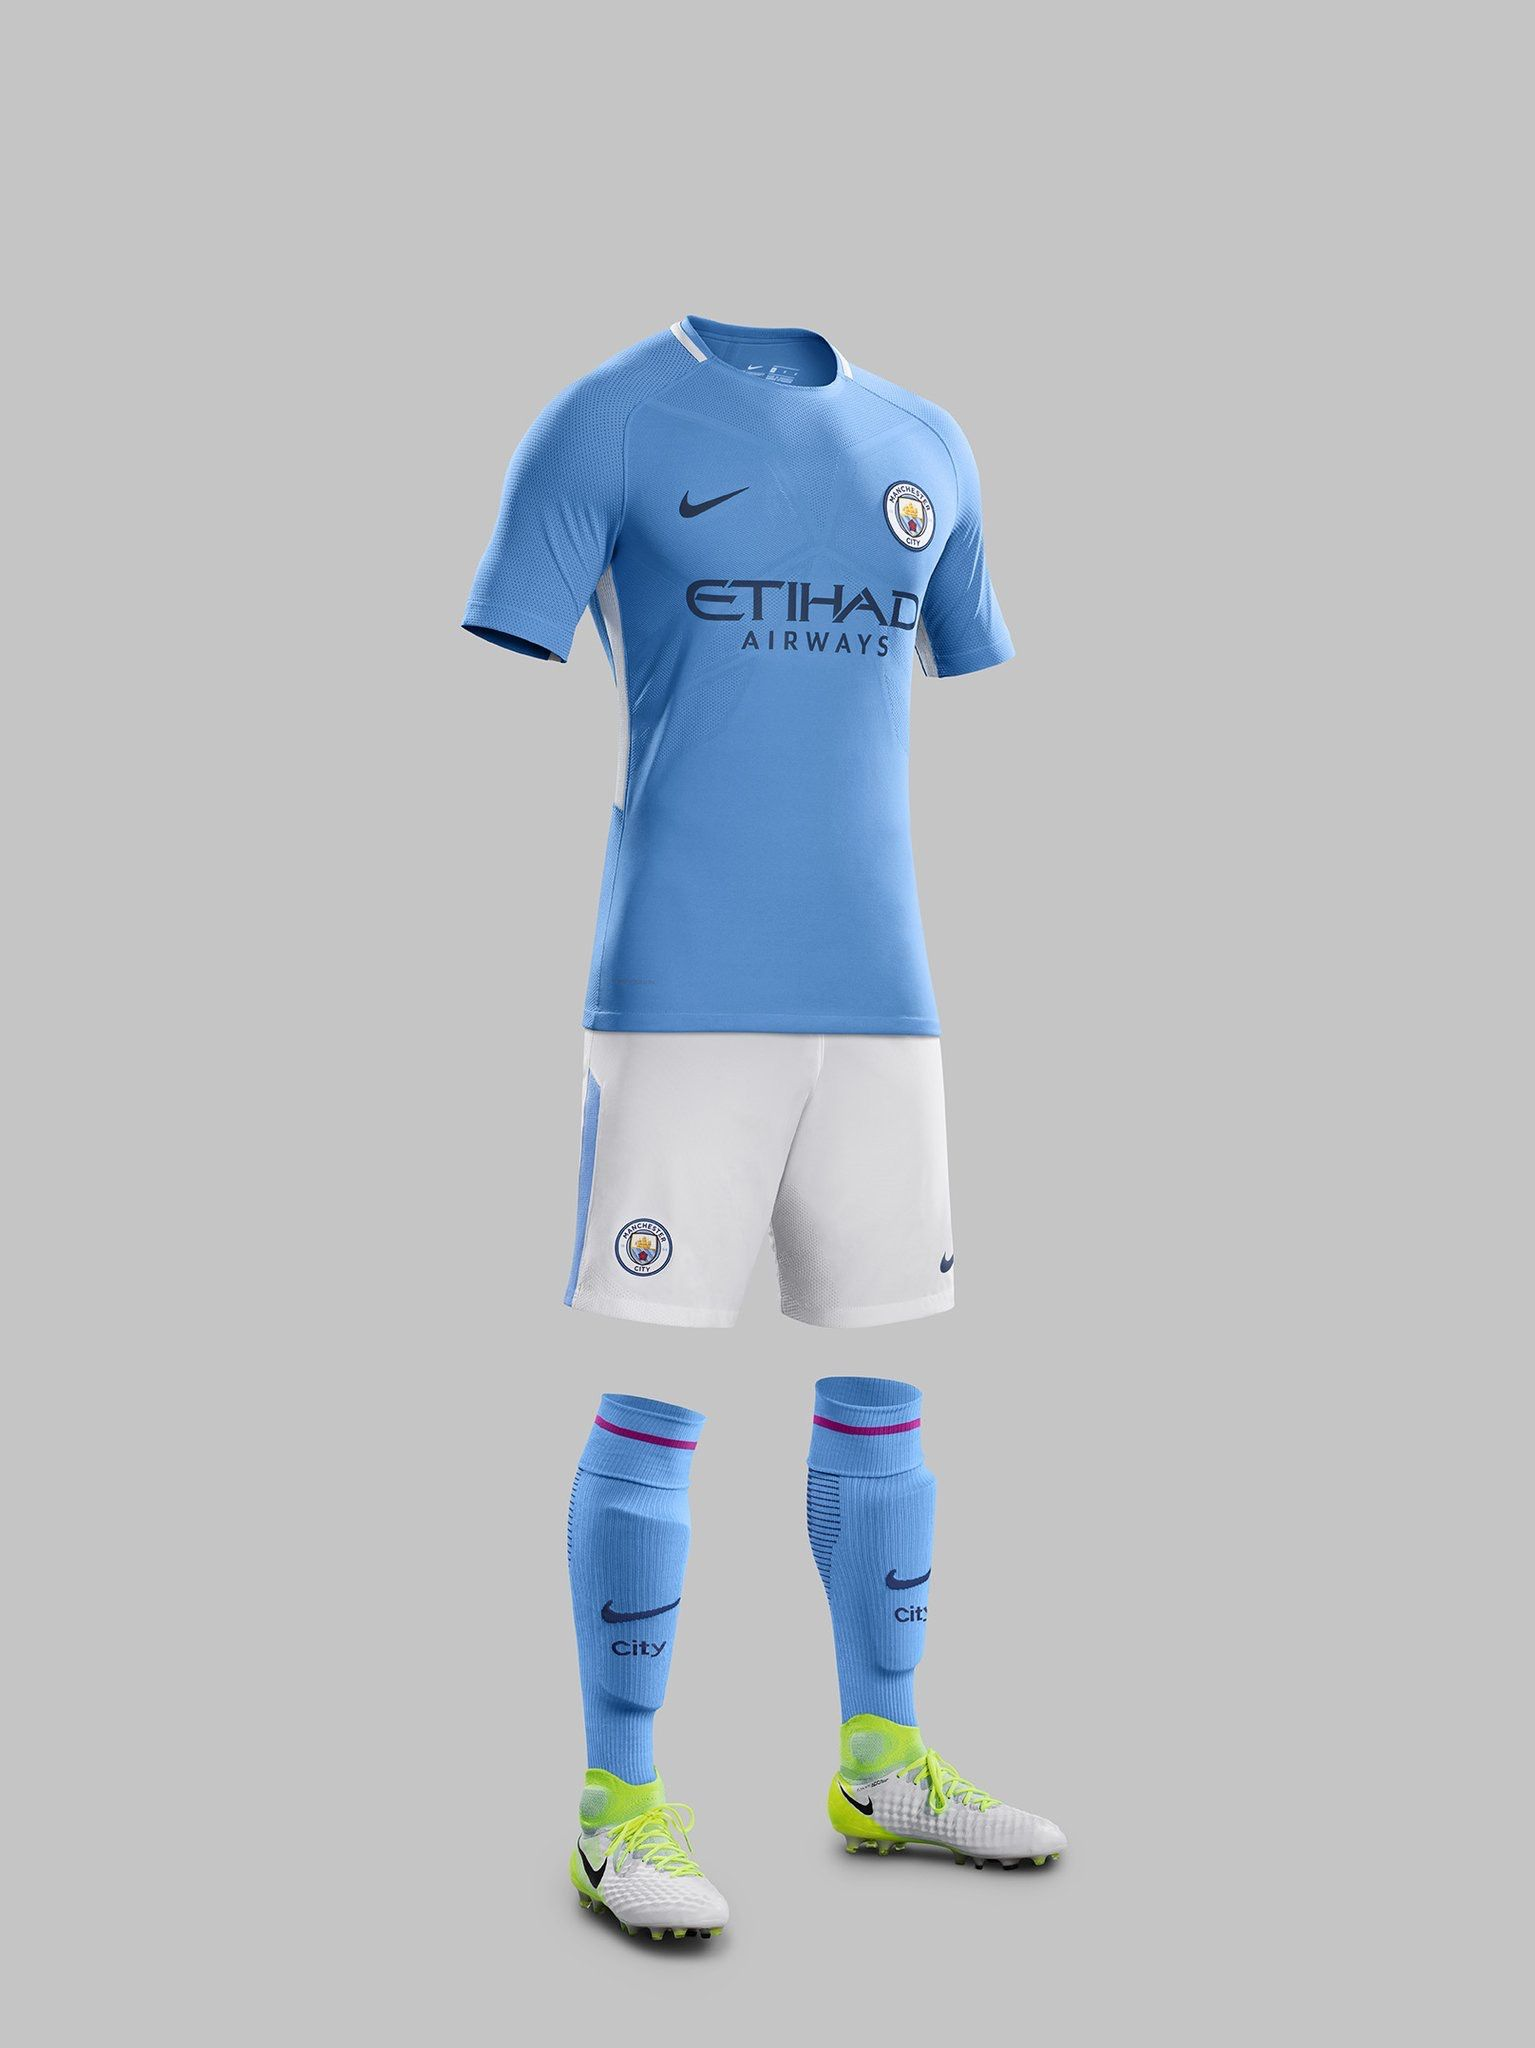 7eb63c416 Manchester City 2017 2018 Home Kit